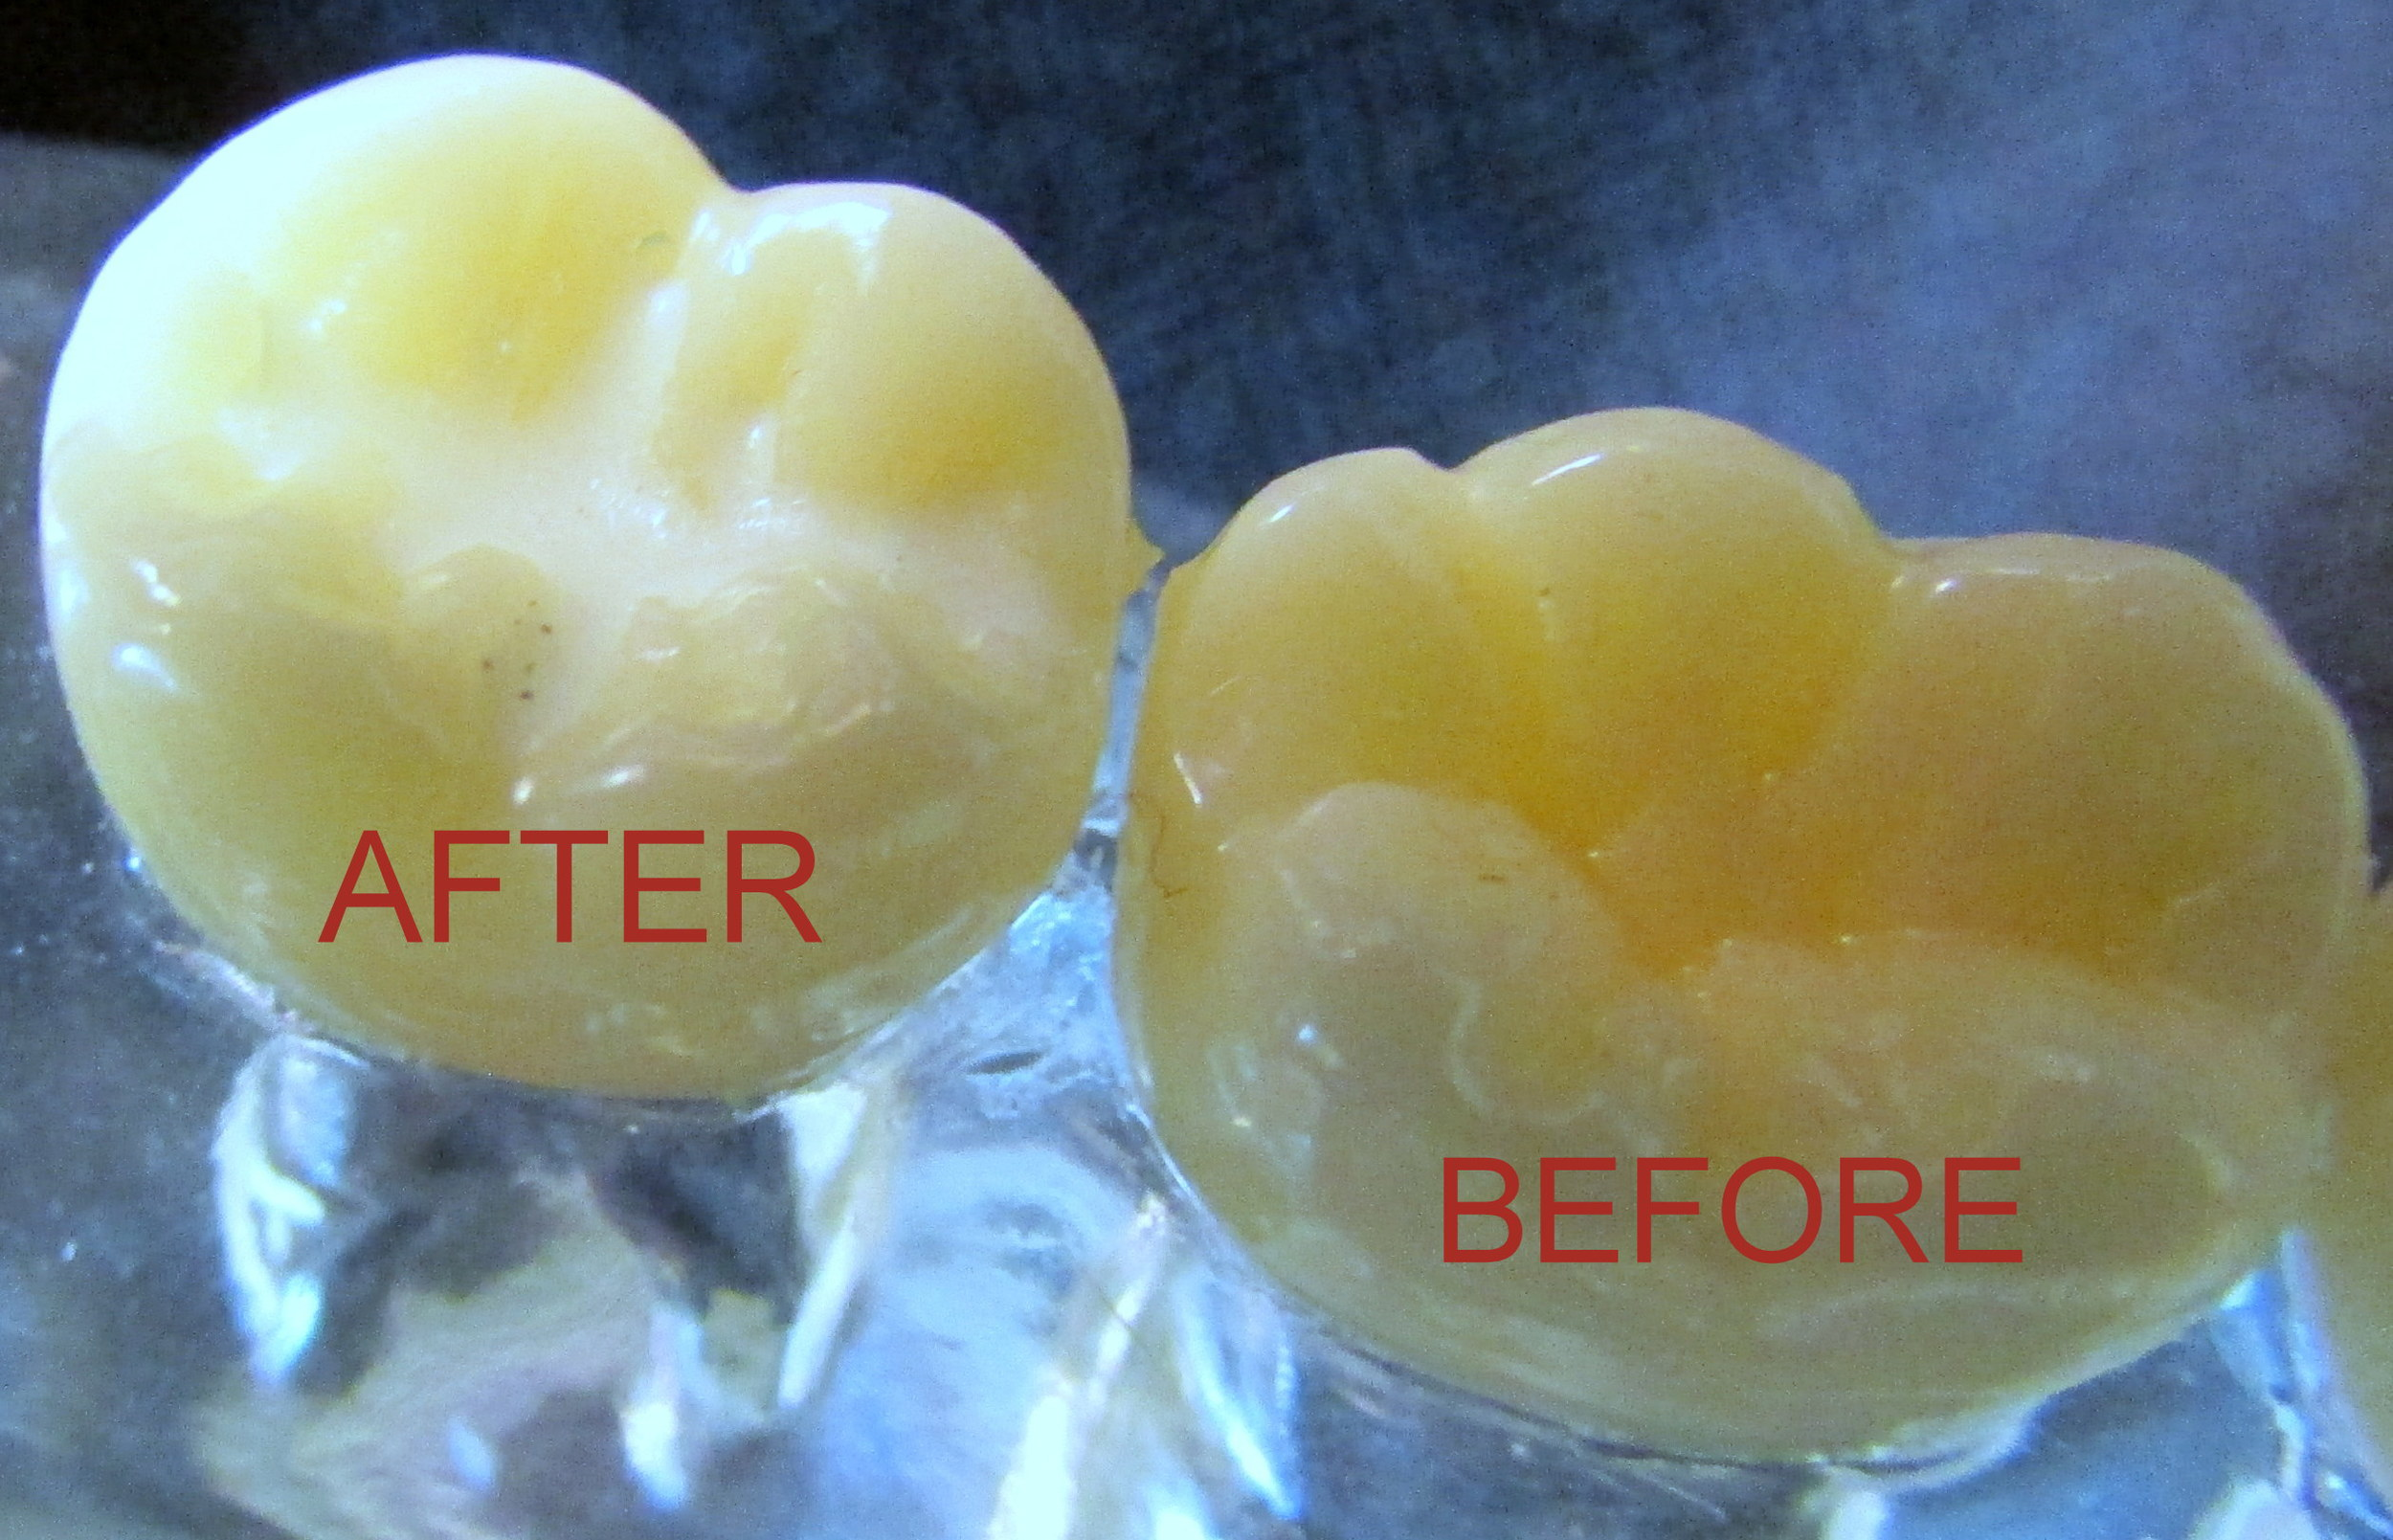 Sealant applied to molar on left, whereas molar on right has deep grooves that can catch bacteria and sugar, which can lead to cavities.